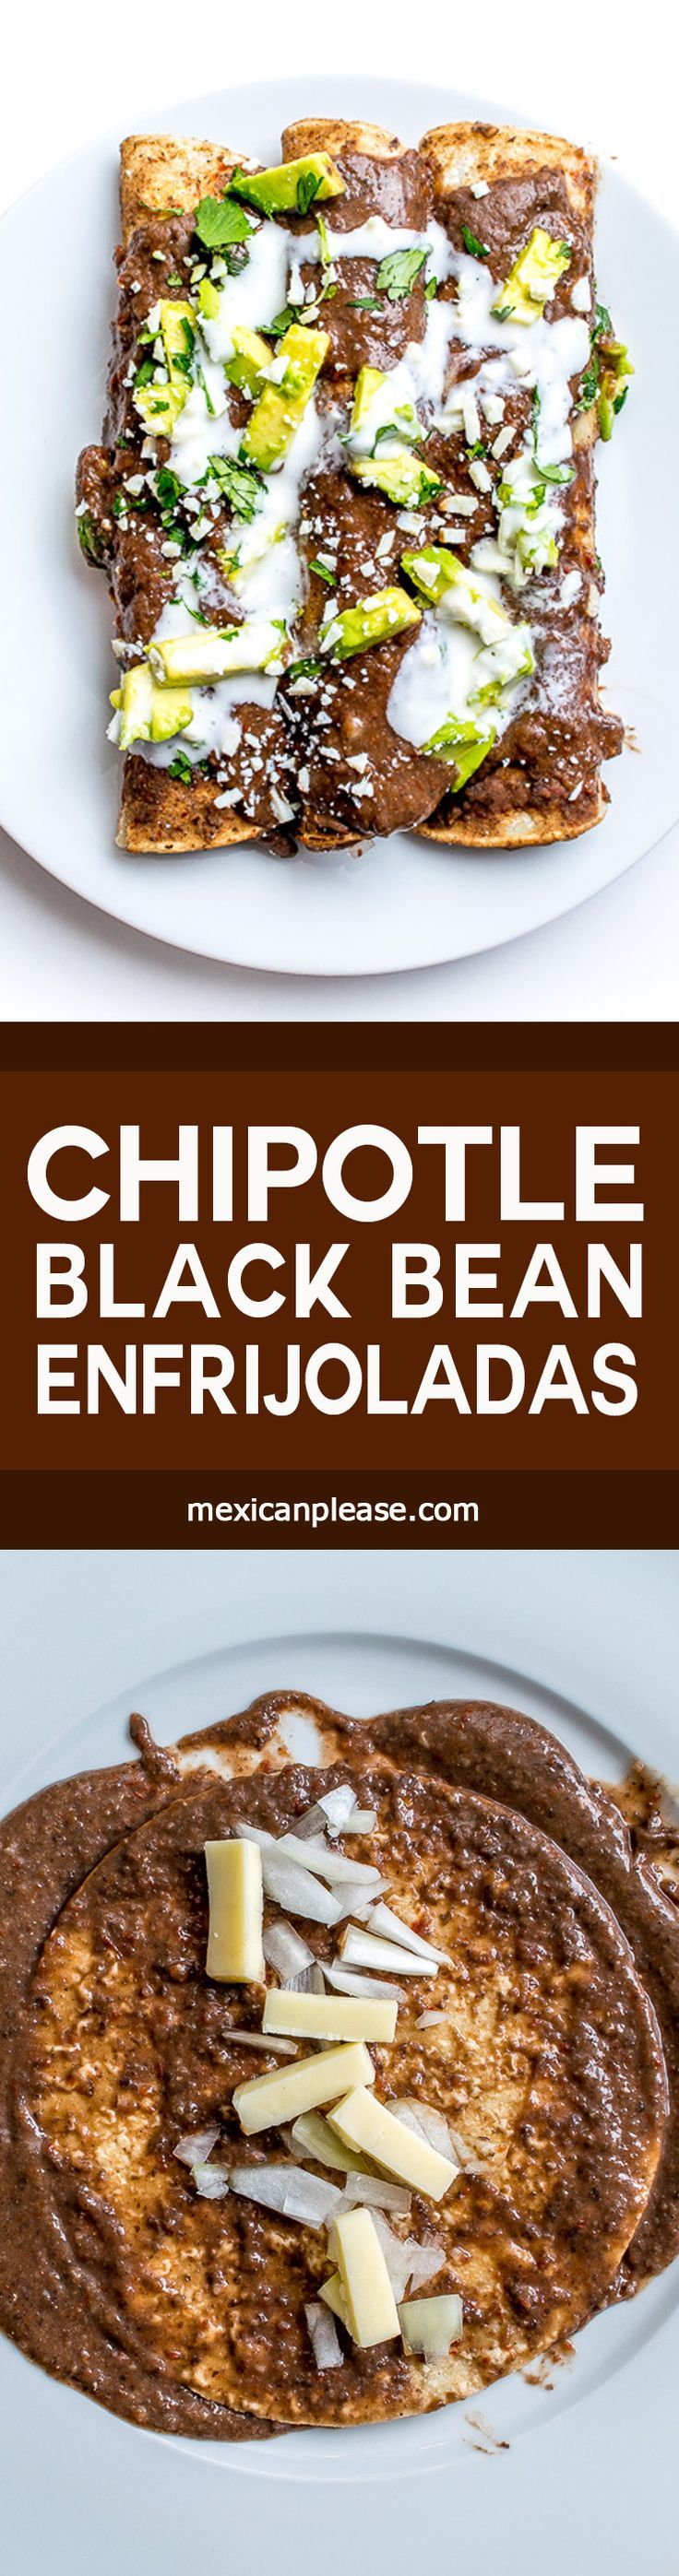 Corn tortillas drenched in a Chipotle infused Black Bean puree?  I'm in!  These Enfrijoladas have incredible flavor and can be customized to your liking.  http://mexicanplease.com